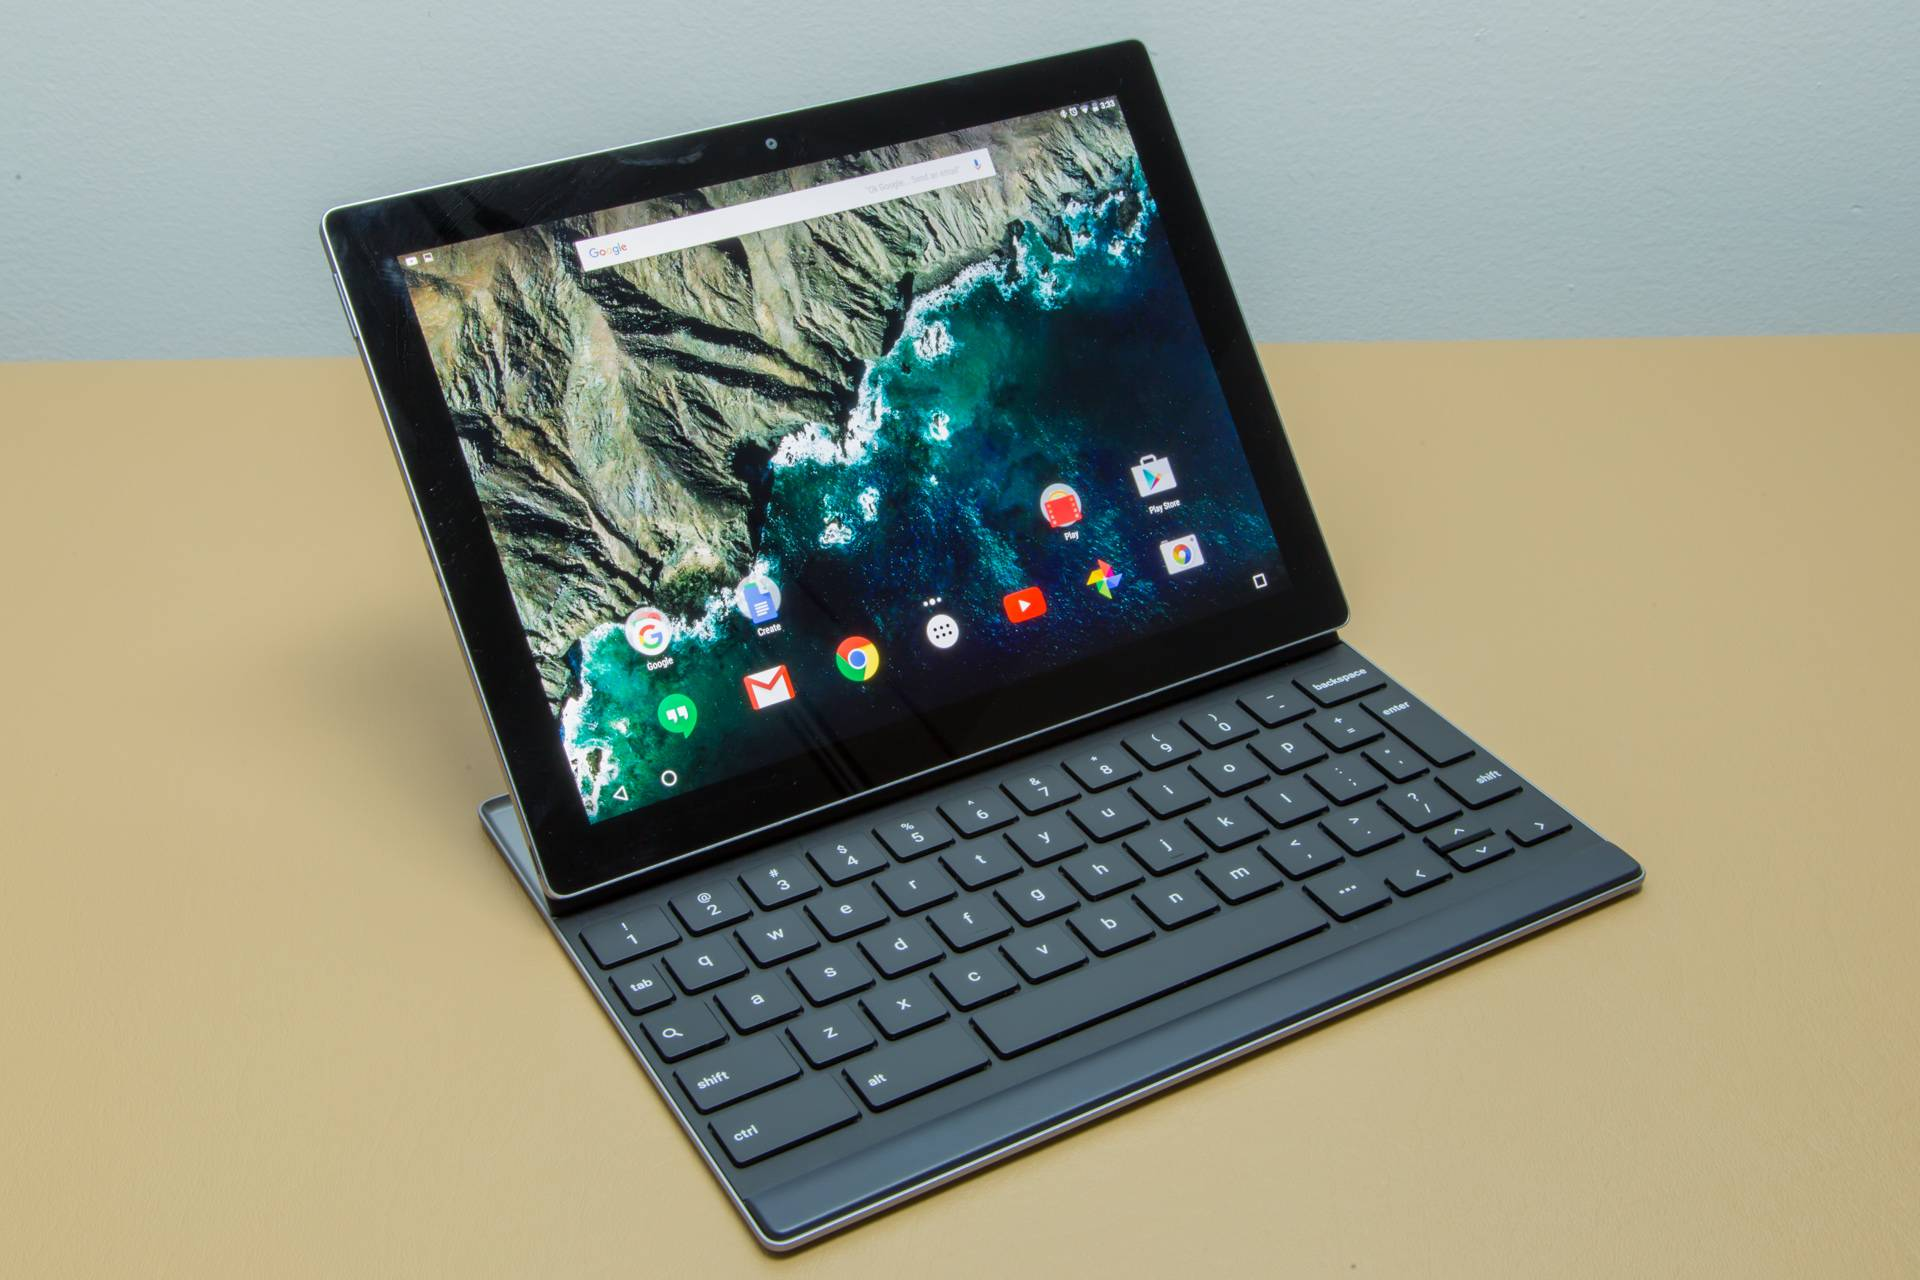 Pixel C Android 2